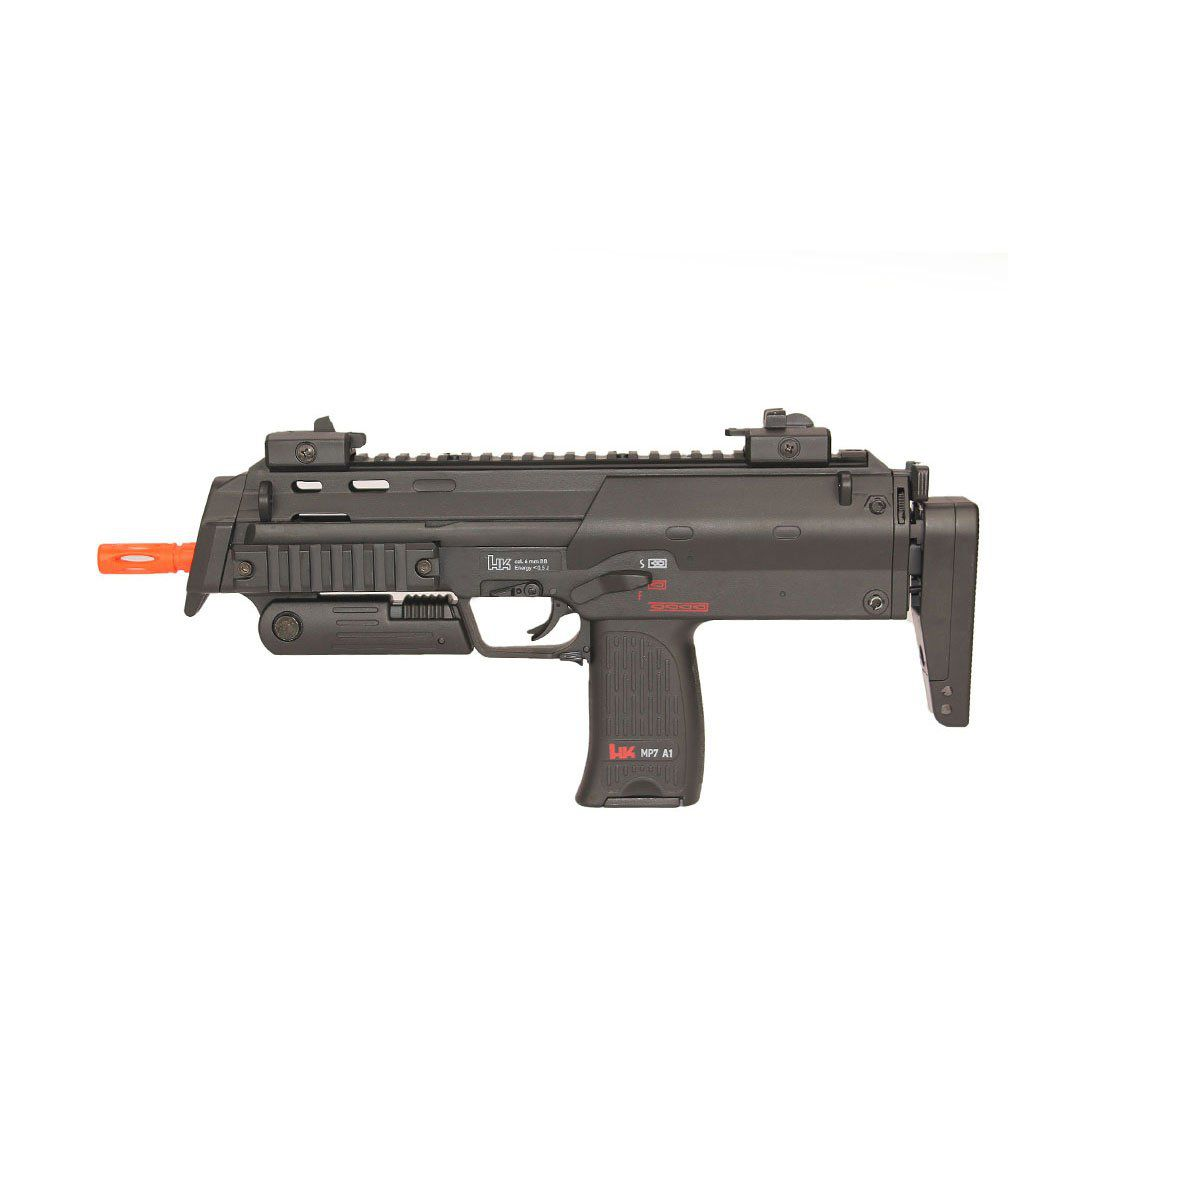 Rifle Airsoft Heckler & Koch Umarex MP7 A1 Elétrico 6mm